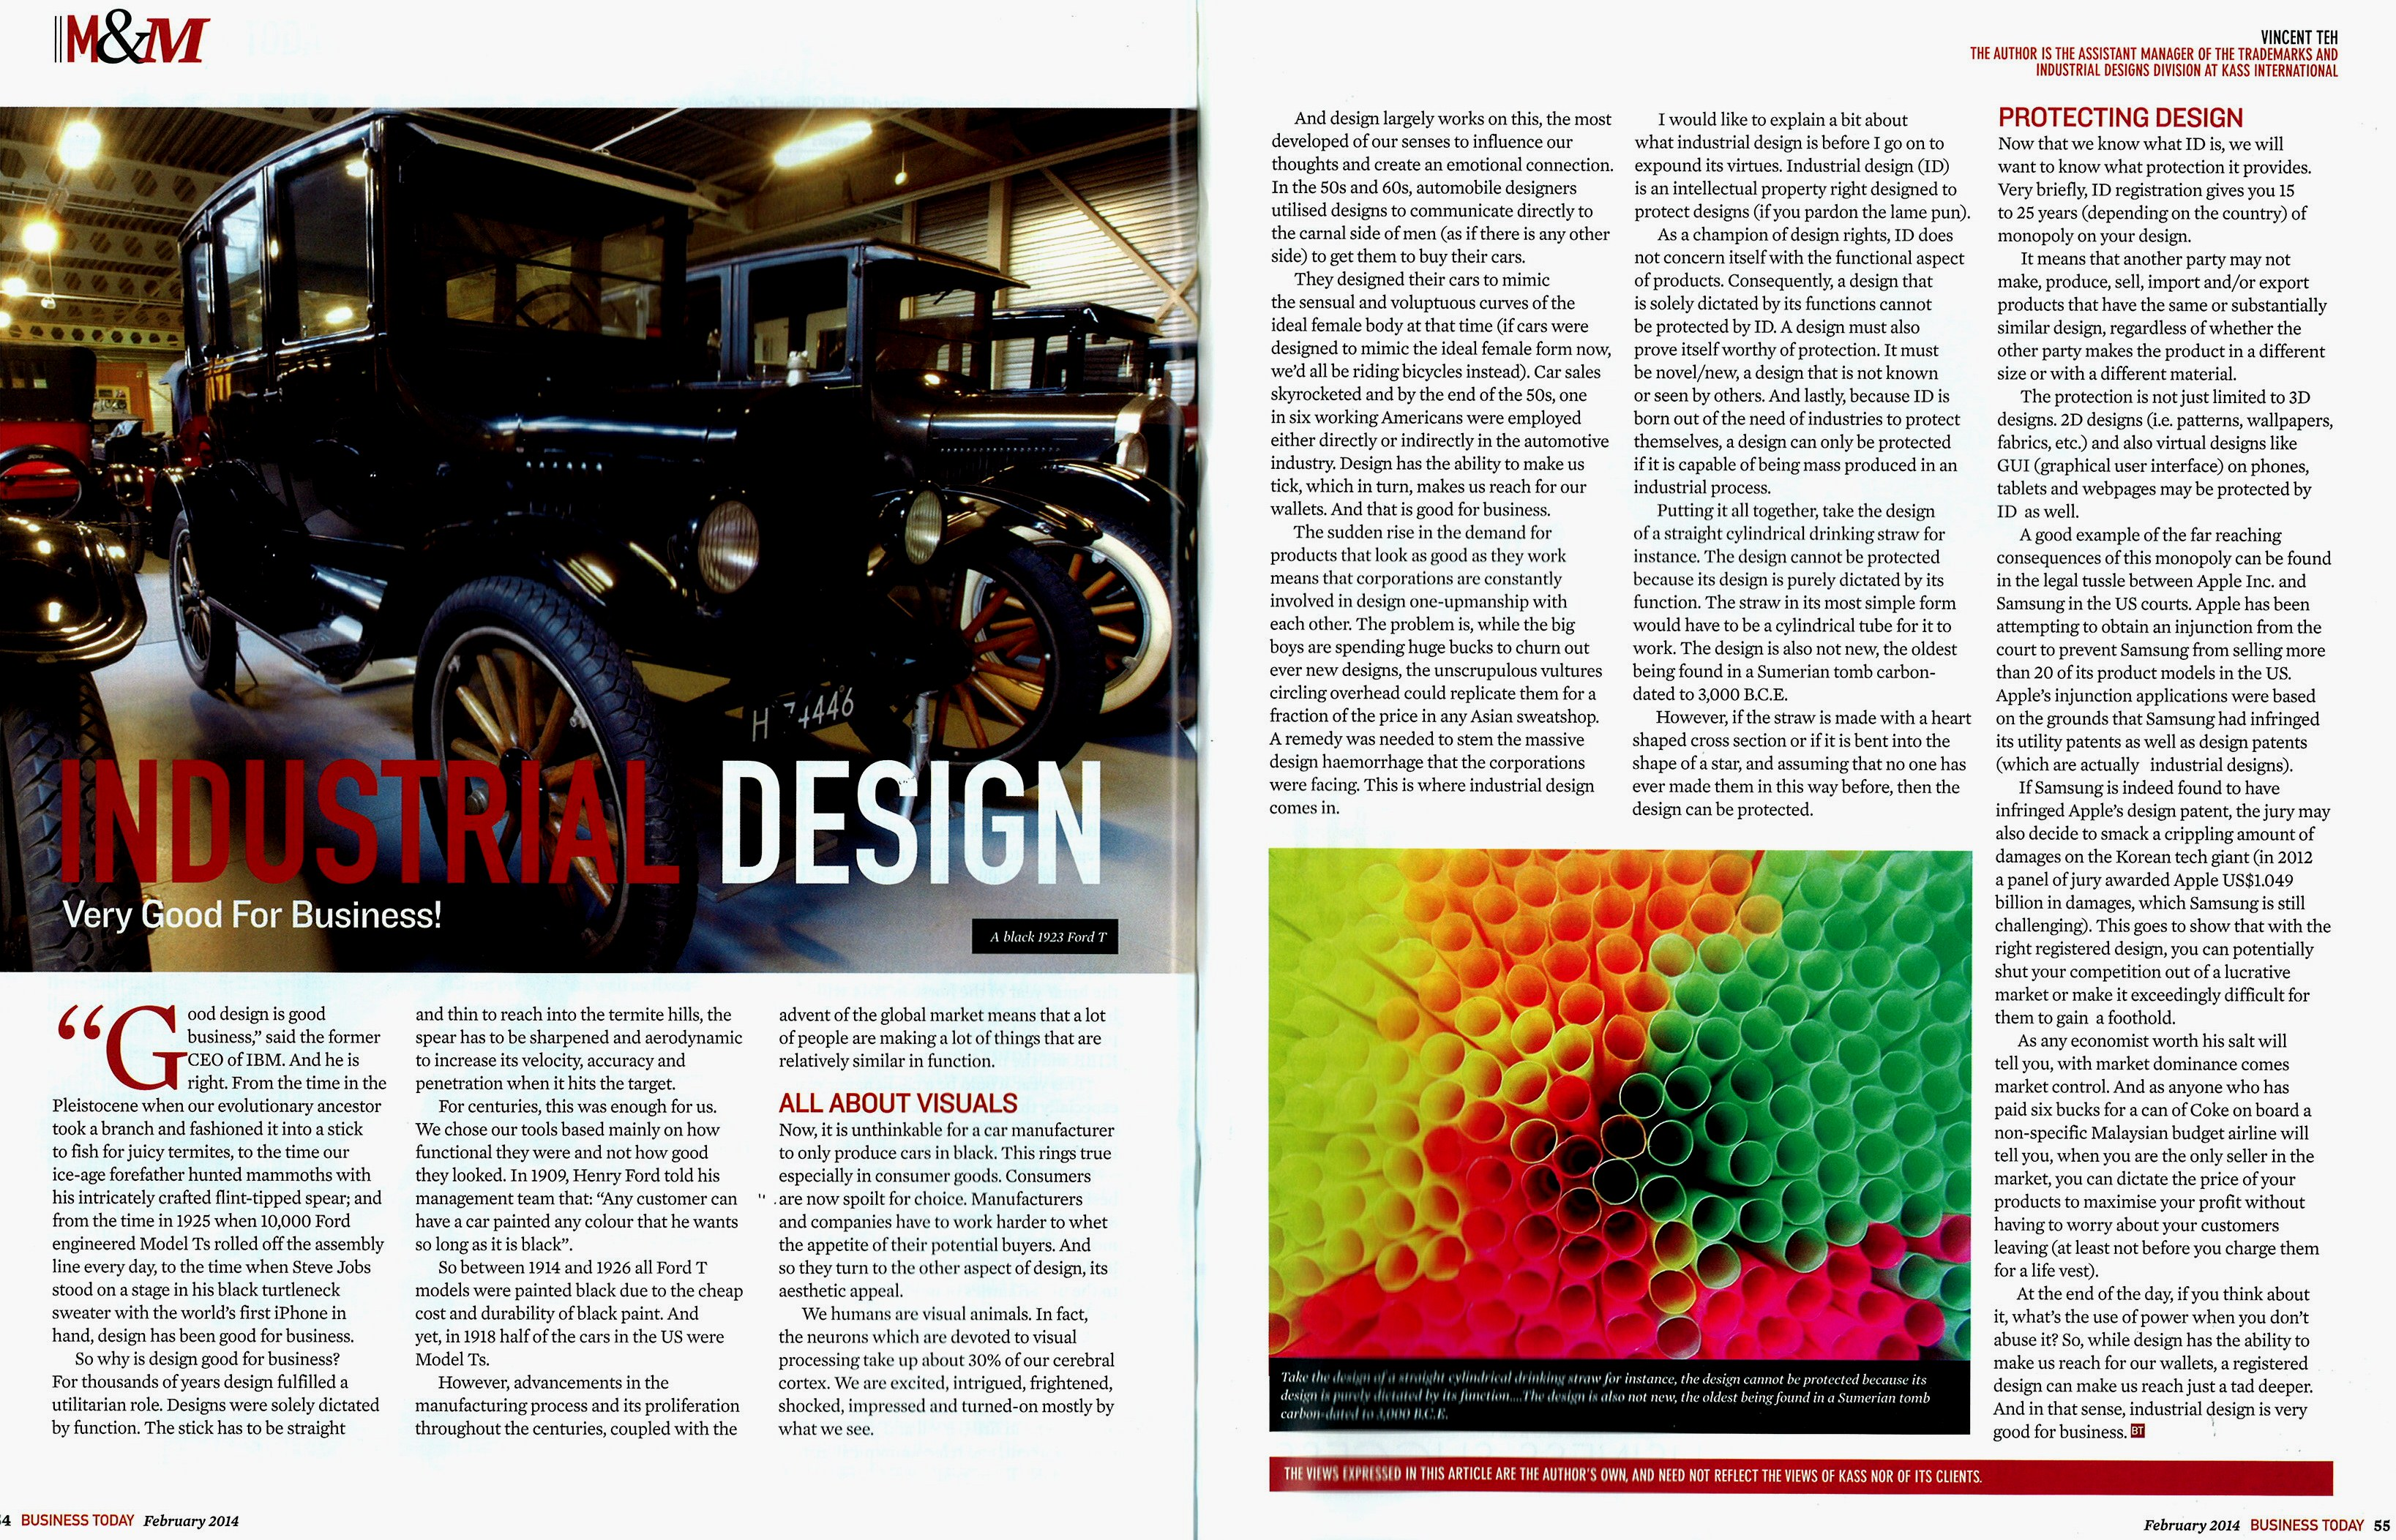 Business today industrial design very good for for Good industrial design